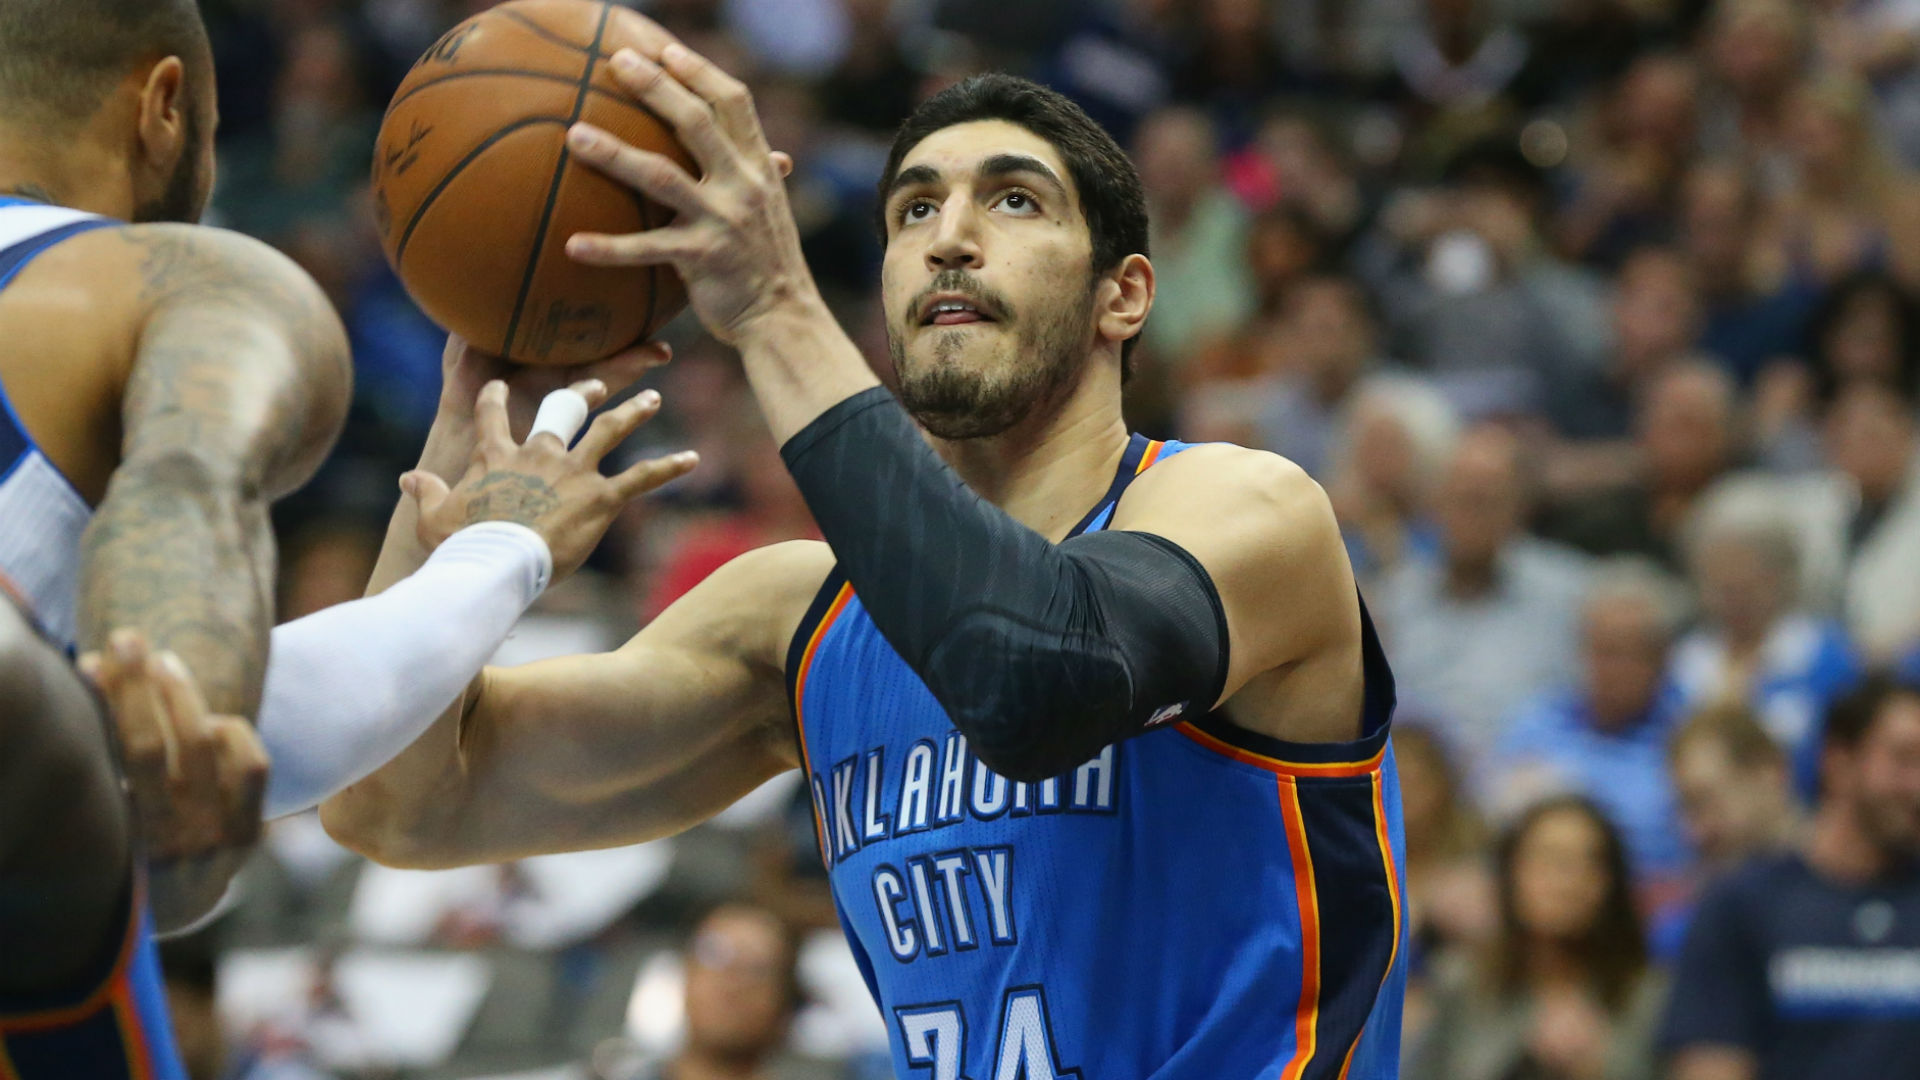 National Basketball Association player Kanter heading to United States after detained in Romania